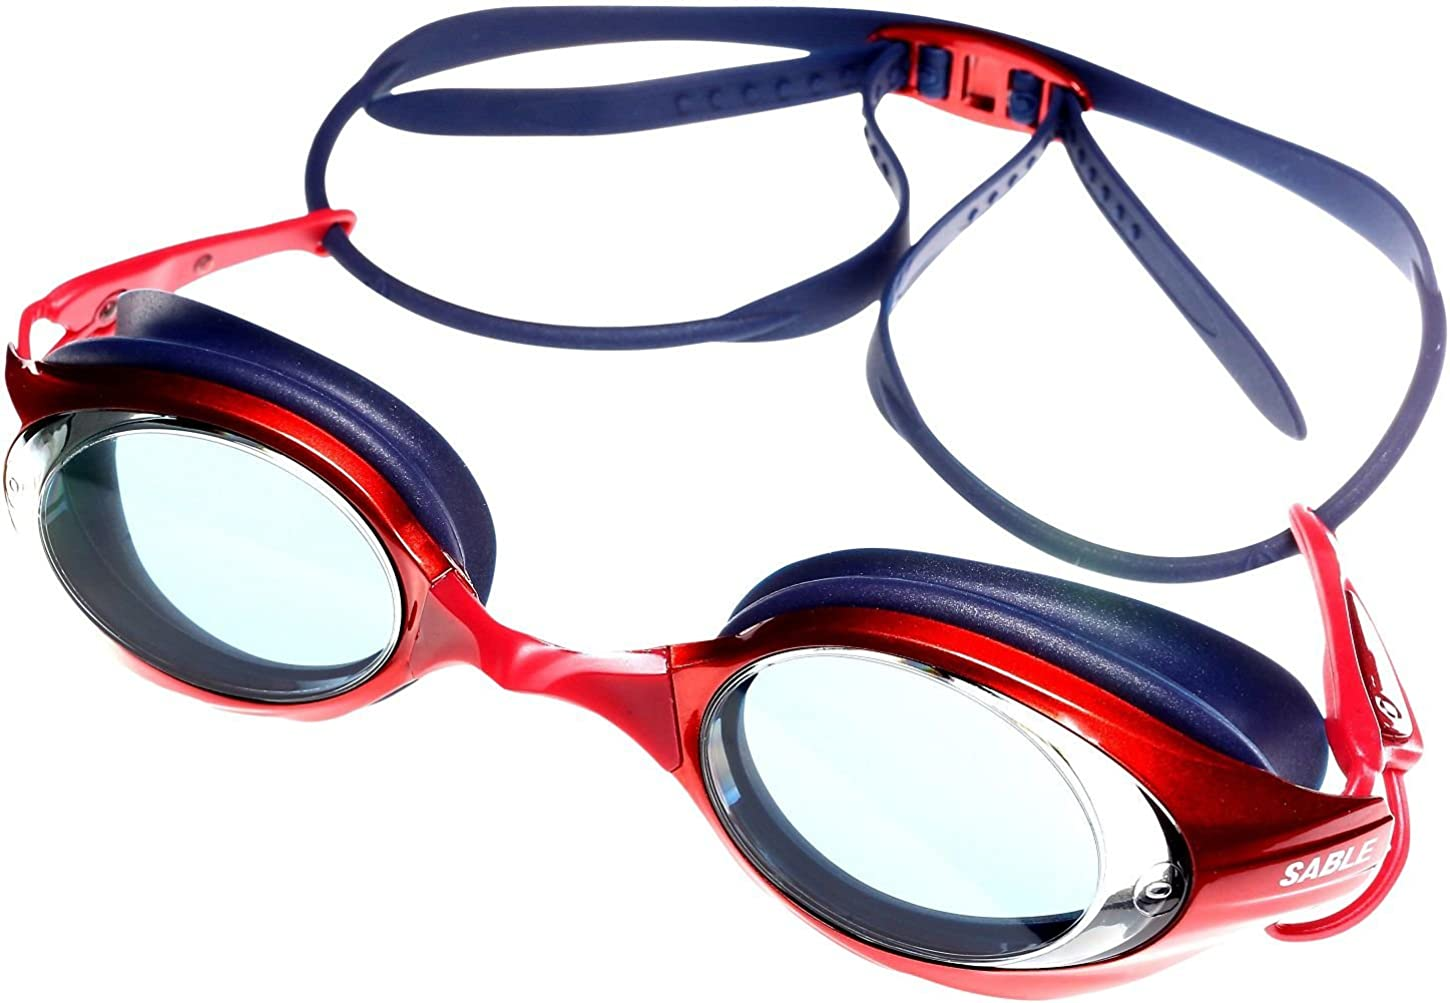 Sales of SALE items from new works Sable GX Polarized Level 3 Red Goggle All items in the store Professional Swim